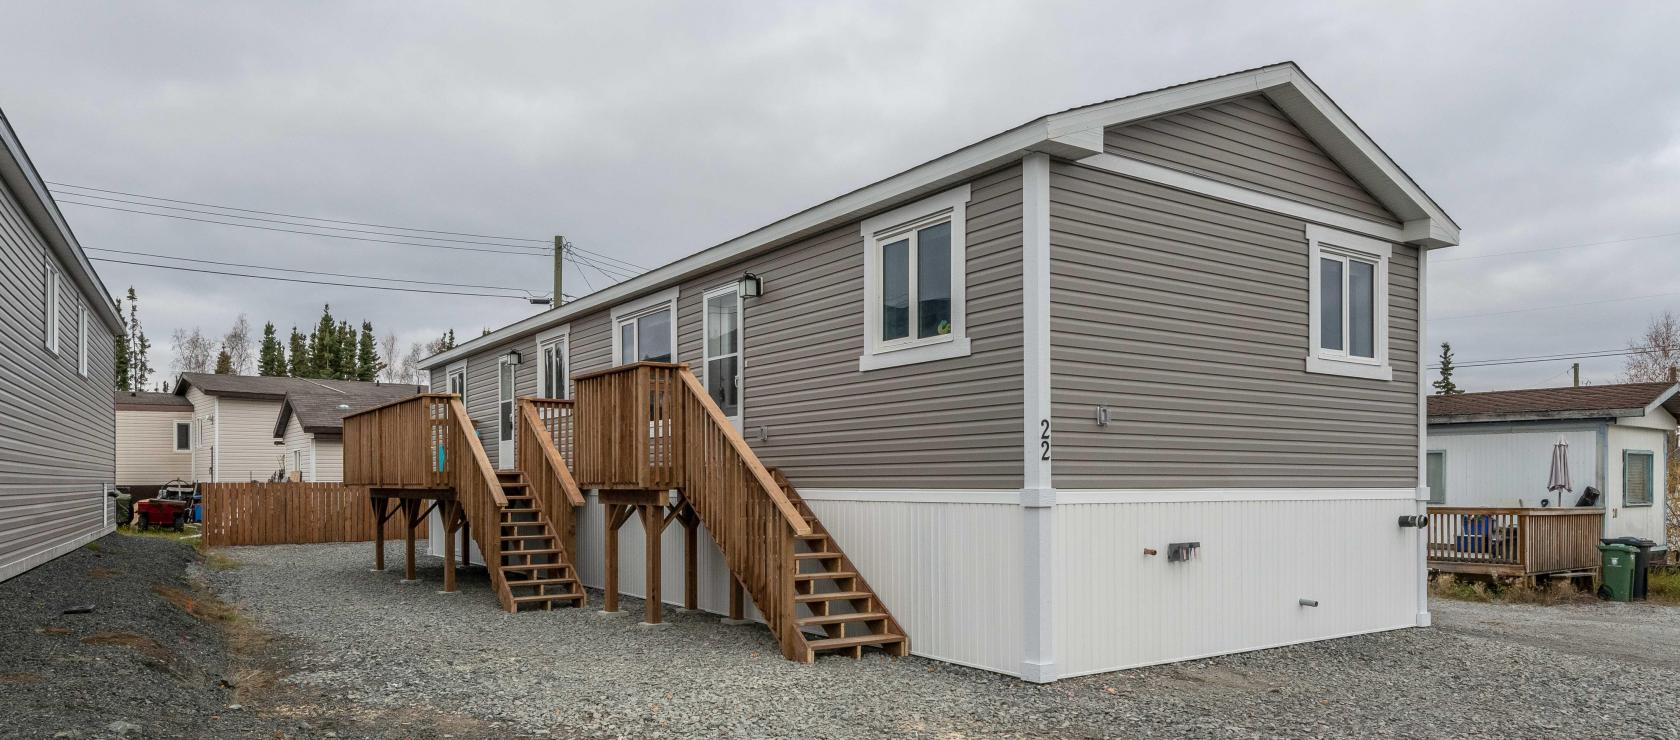 22 Rycon Place, Con Road, Yellowknife 2